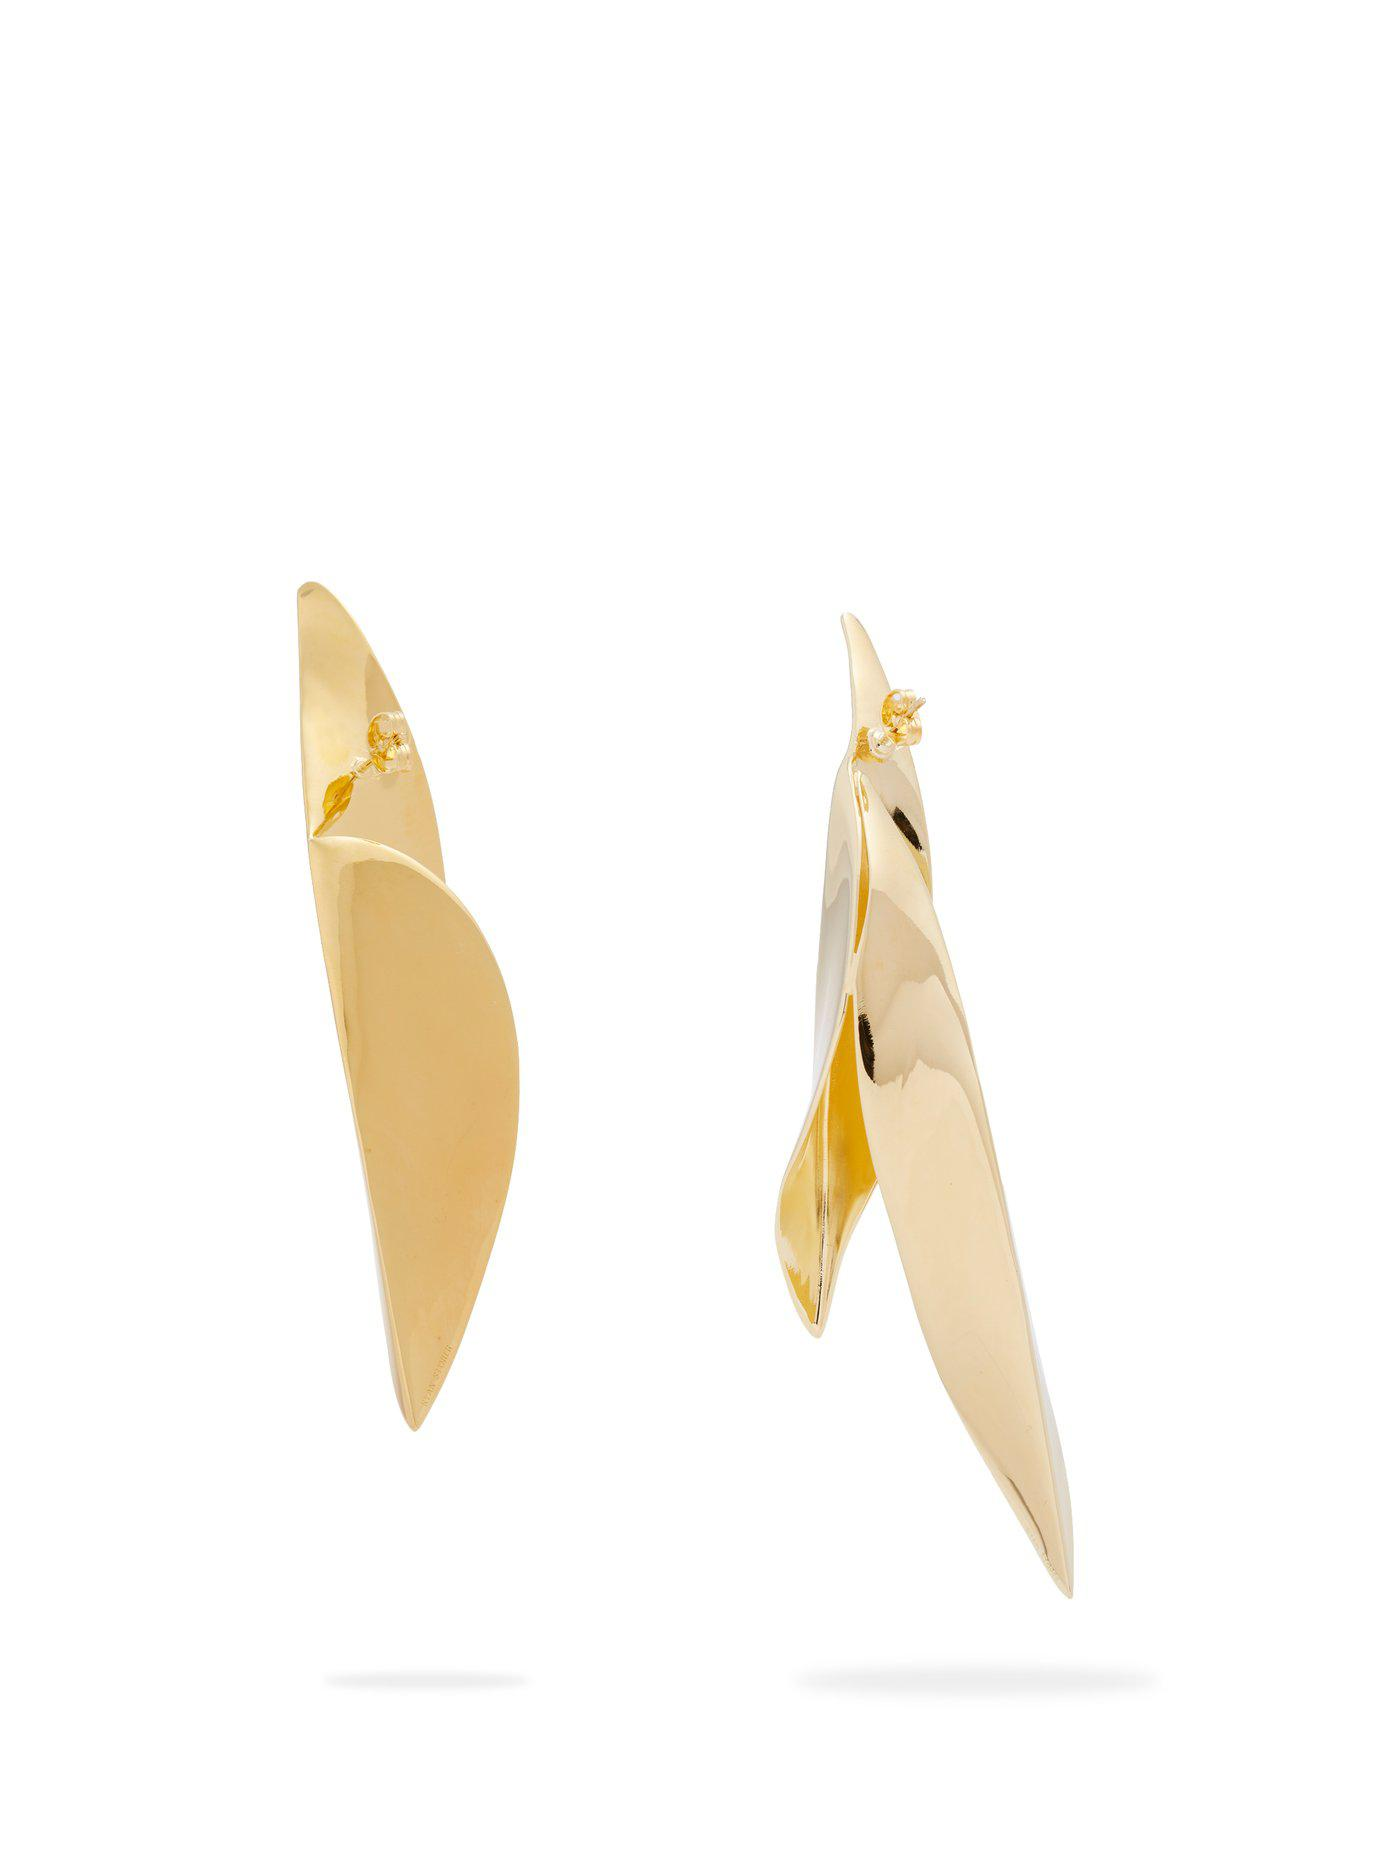 Ryan Storer Sansevieria gold-plated mismatched earrings mcfzaiL2